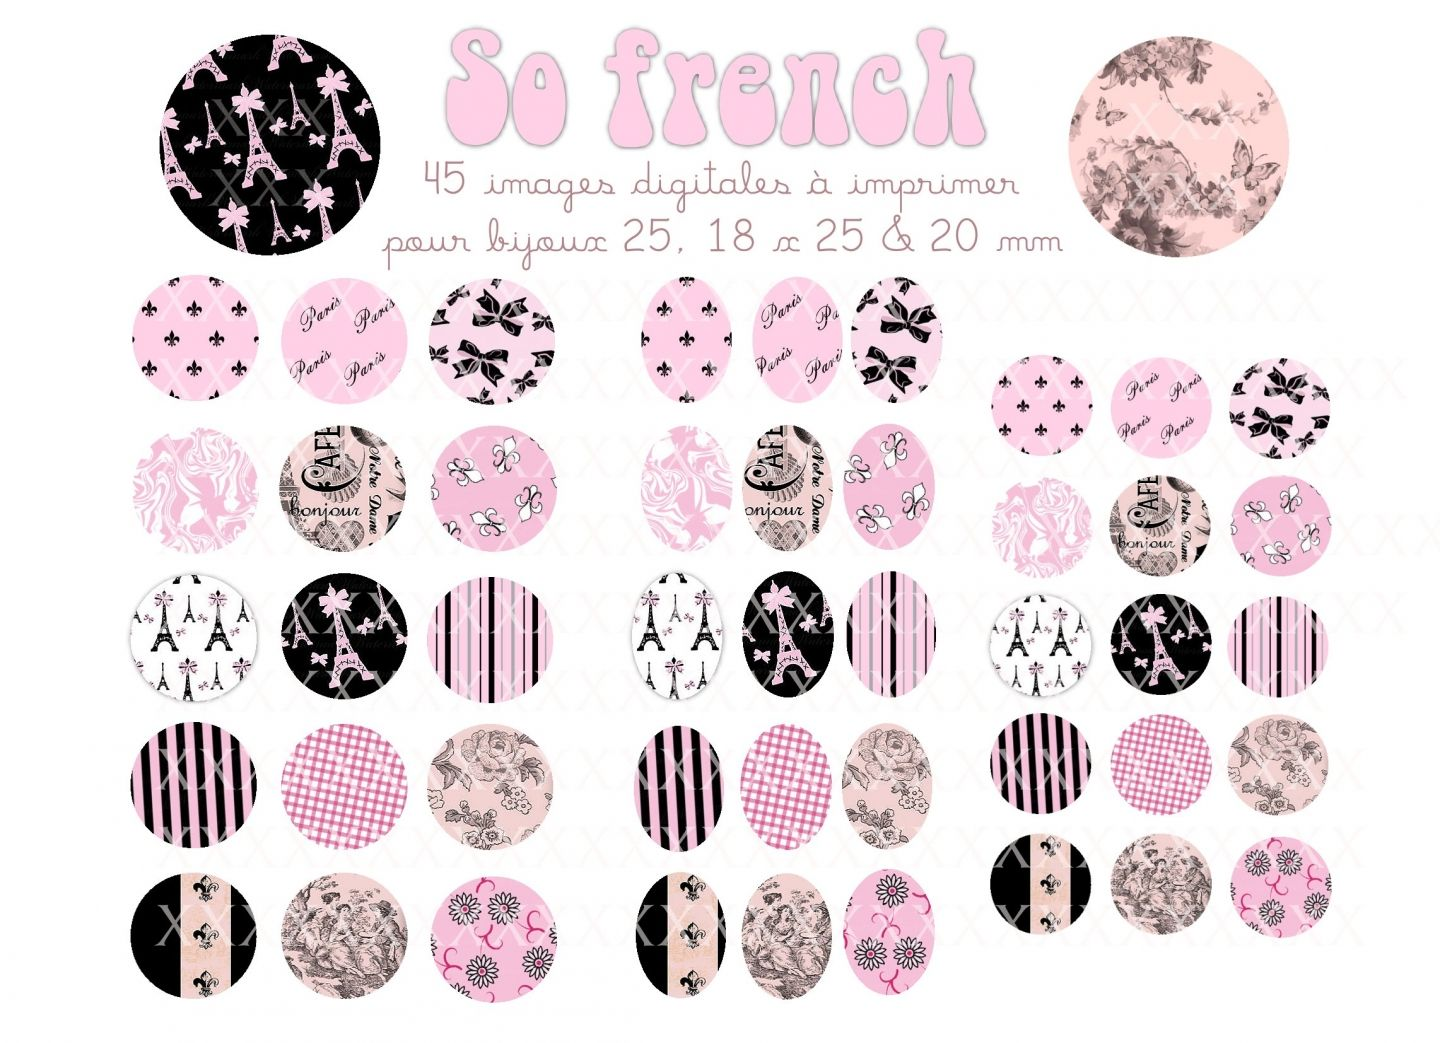 Fabulous 45 images digitales pour cabochons, 25x18, 20, 25 mm frenchies  TQ87